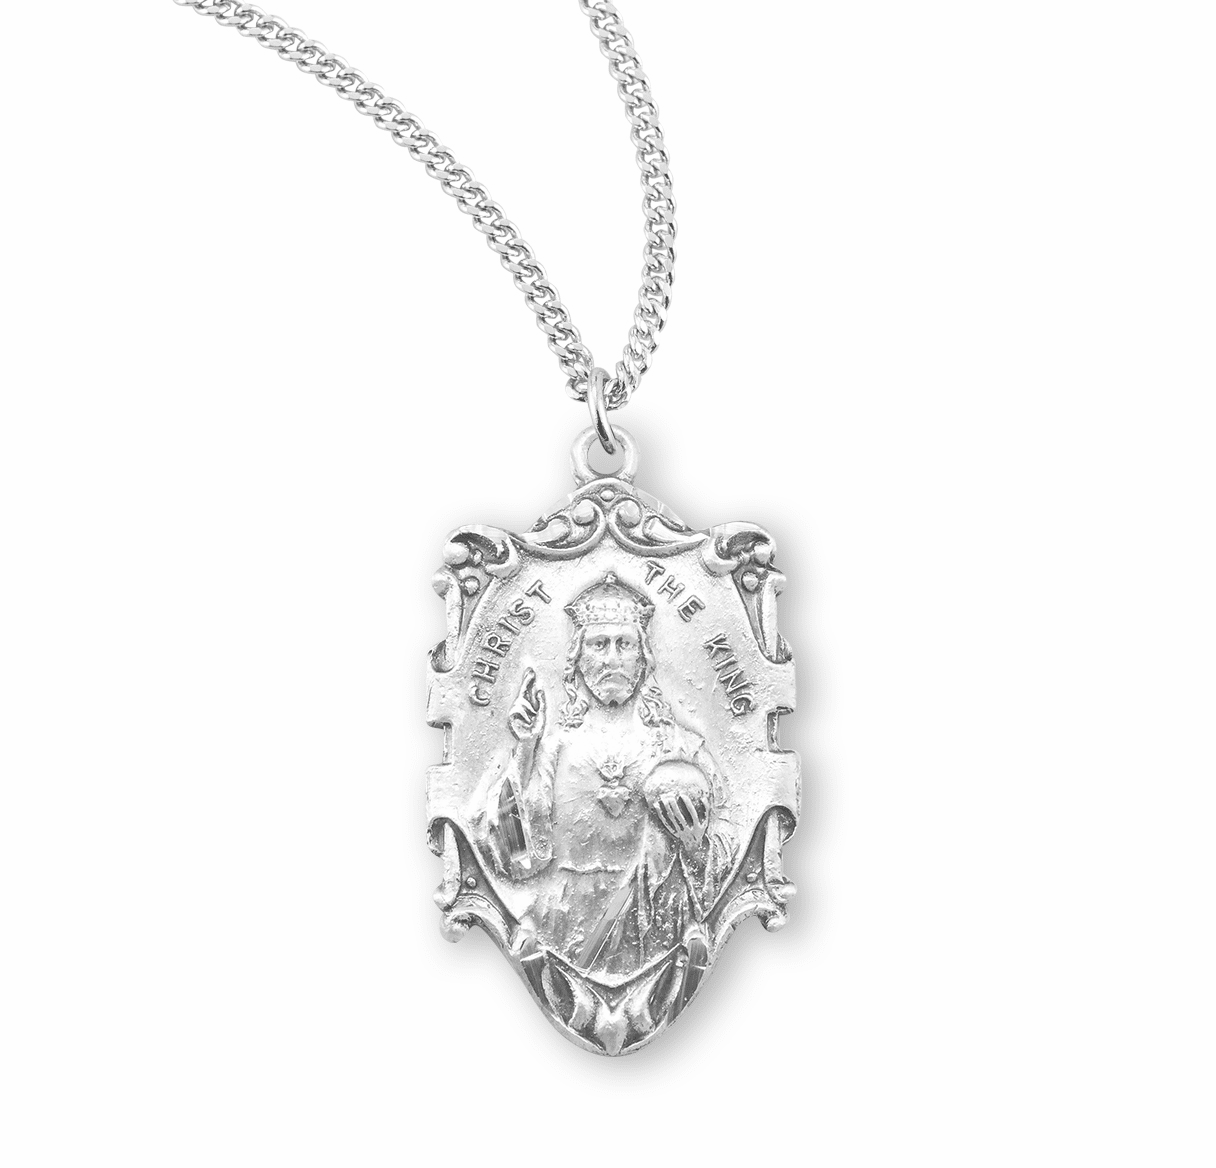 HMH Religious The Lord Jesus the King Christ Sterling Silver Necklace w/Chain